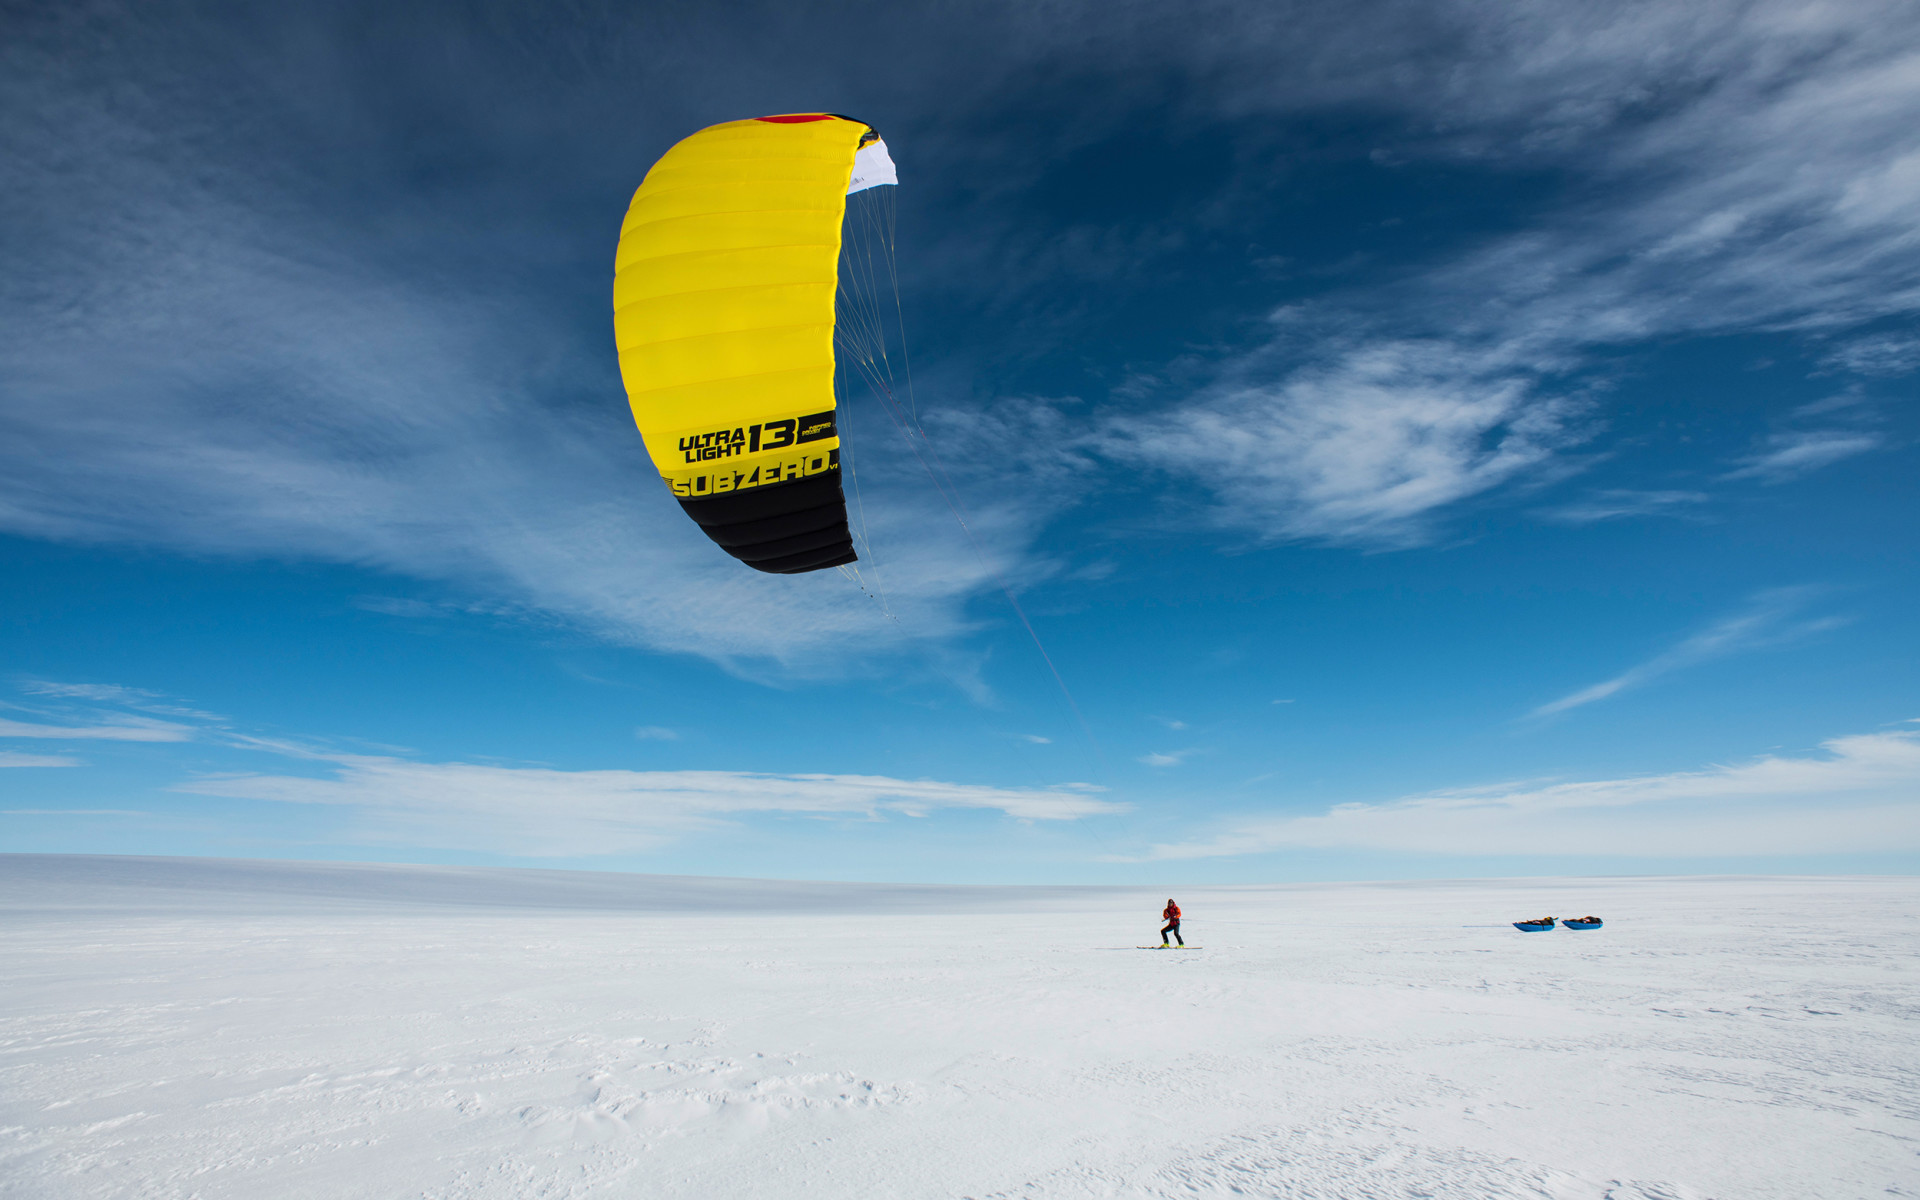 The expedition would have hardly been possible without kites.